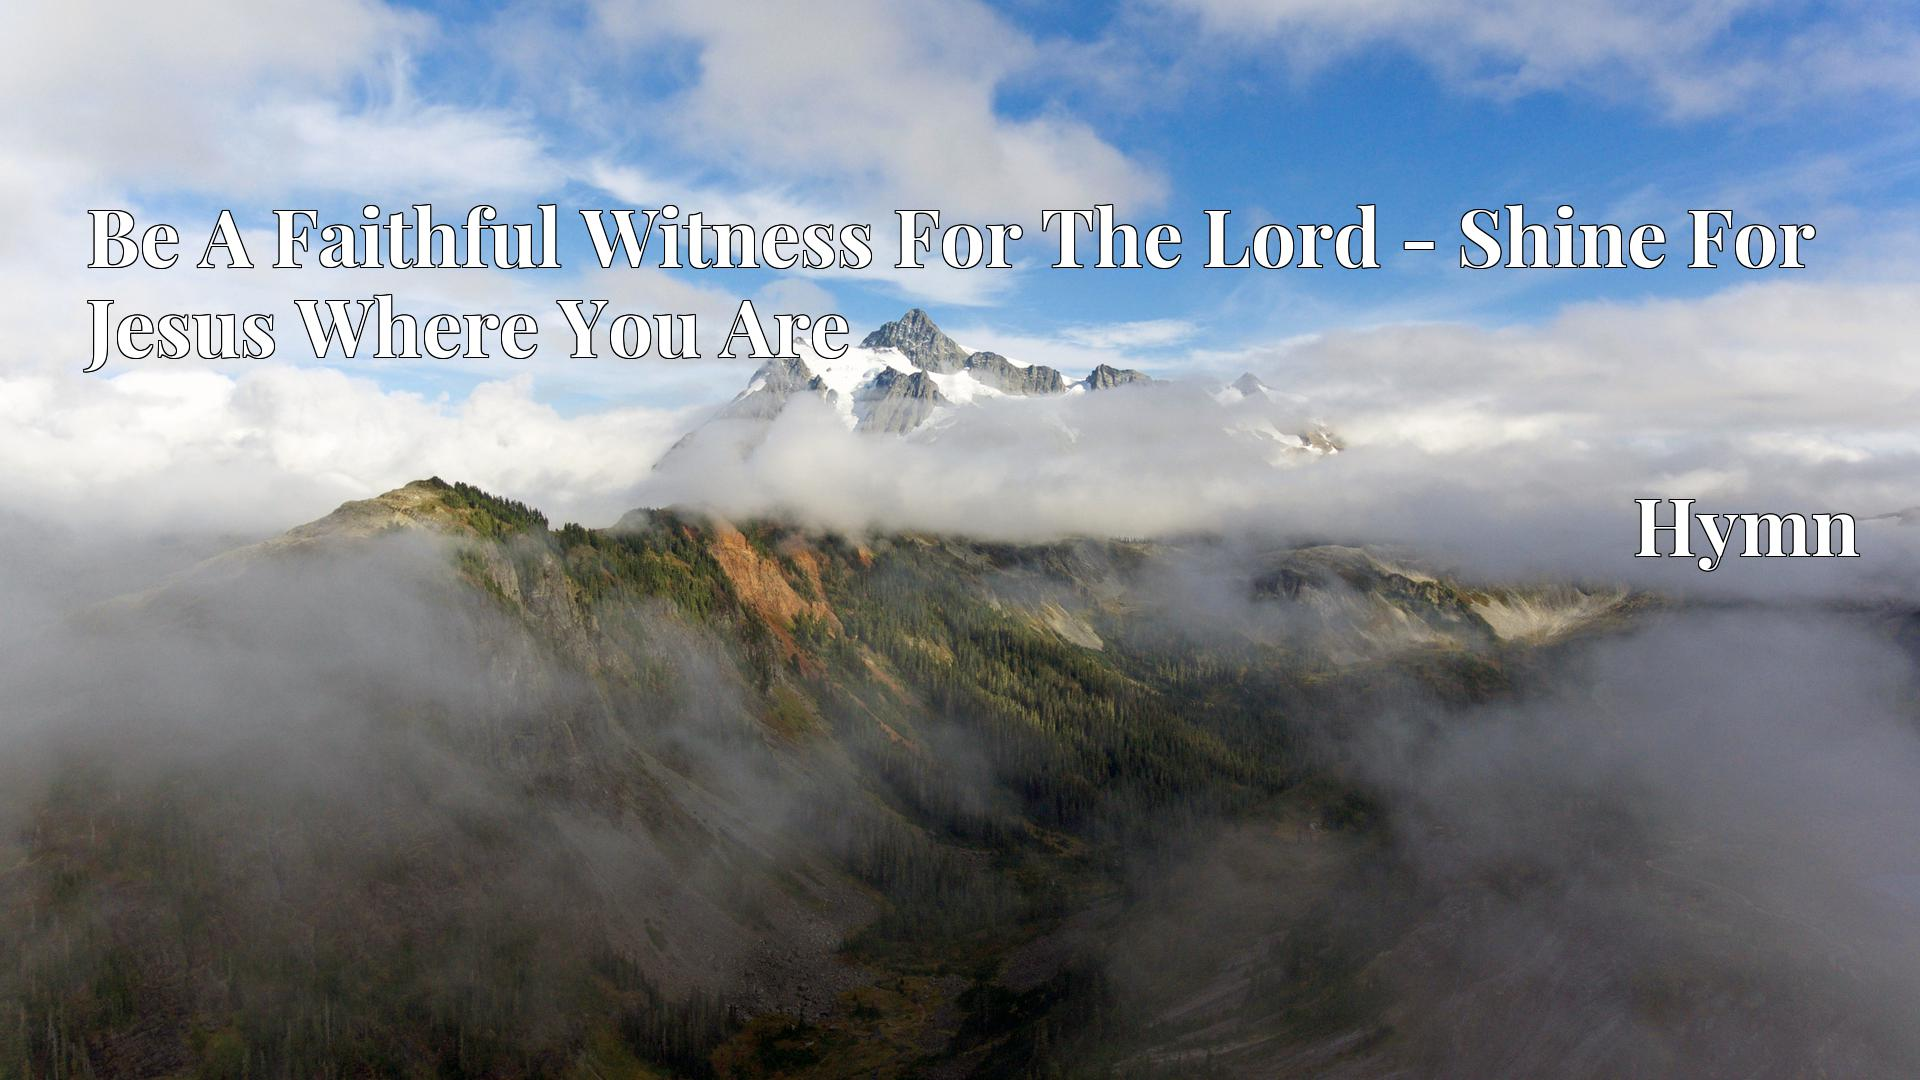 Be A Faithful Witness For The Lord - Shine For Jesus Where You Are - Hymn